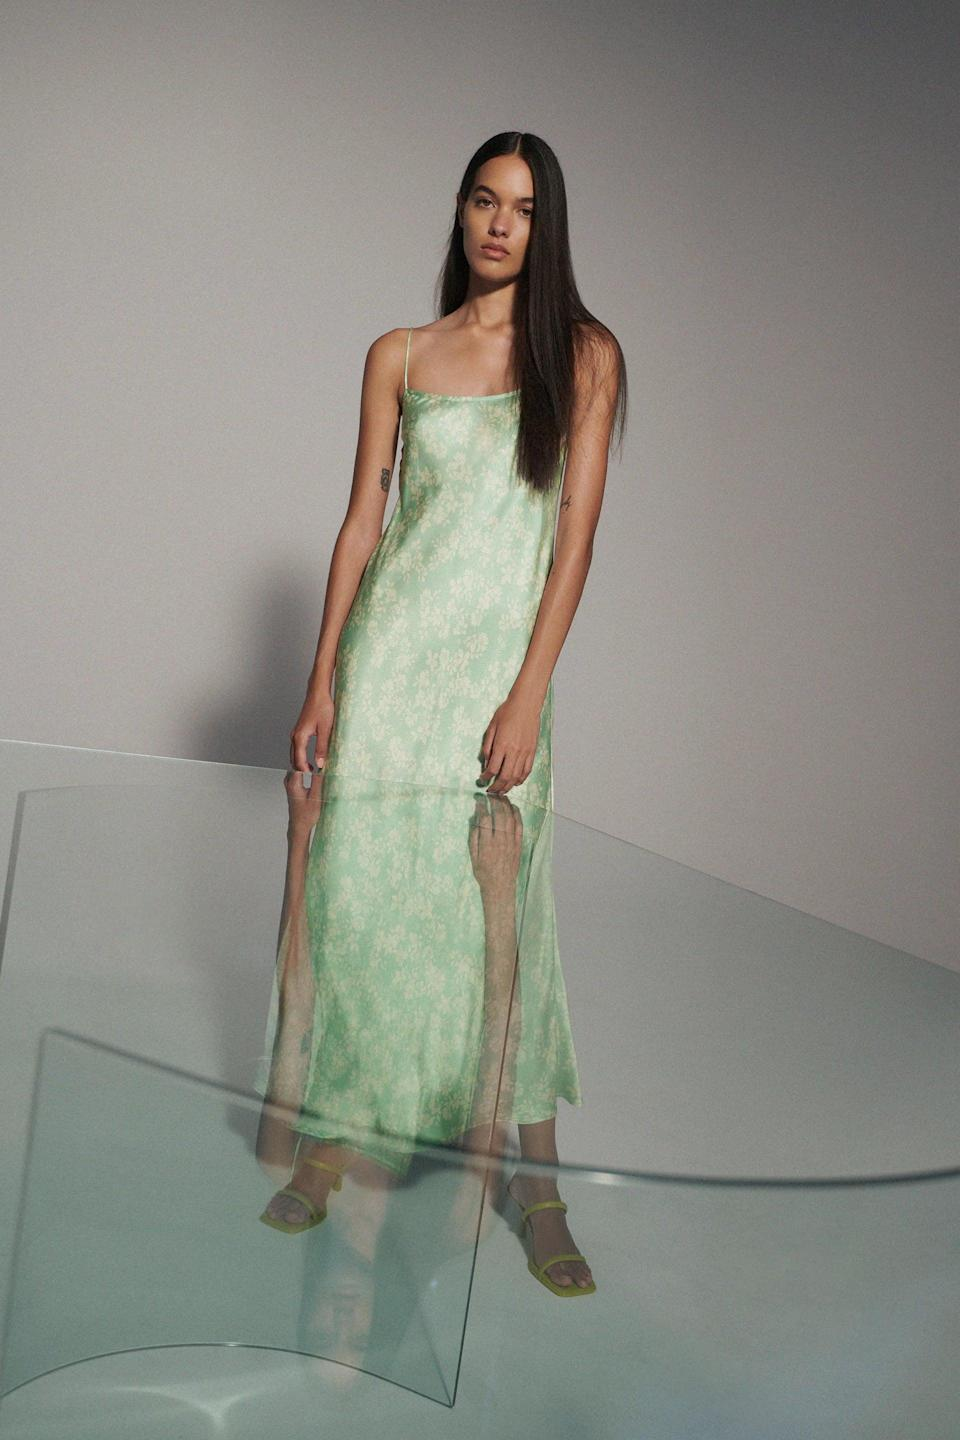 <p>This <span>Zara Floral Satin Dress</span> ($50) has an innate sensuality that will make you feel empowered and sexy. Simply finish off the look with some barely-there sandals and a dainty necklace.</p>